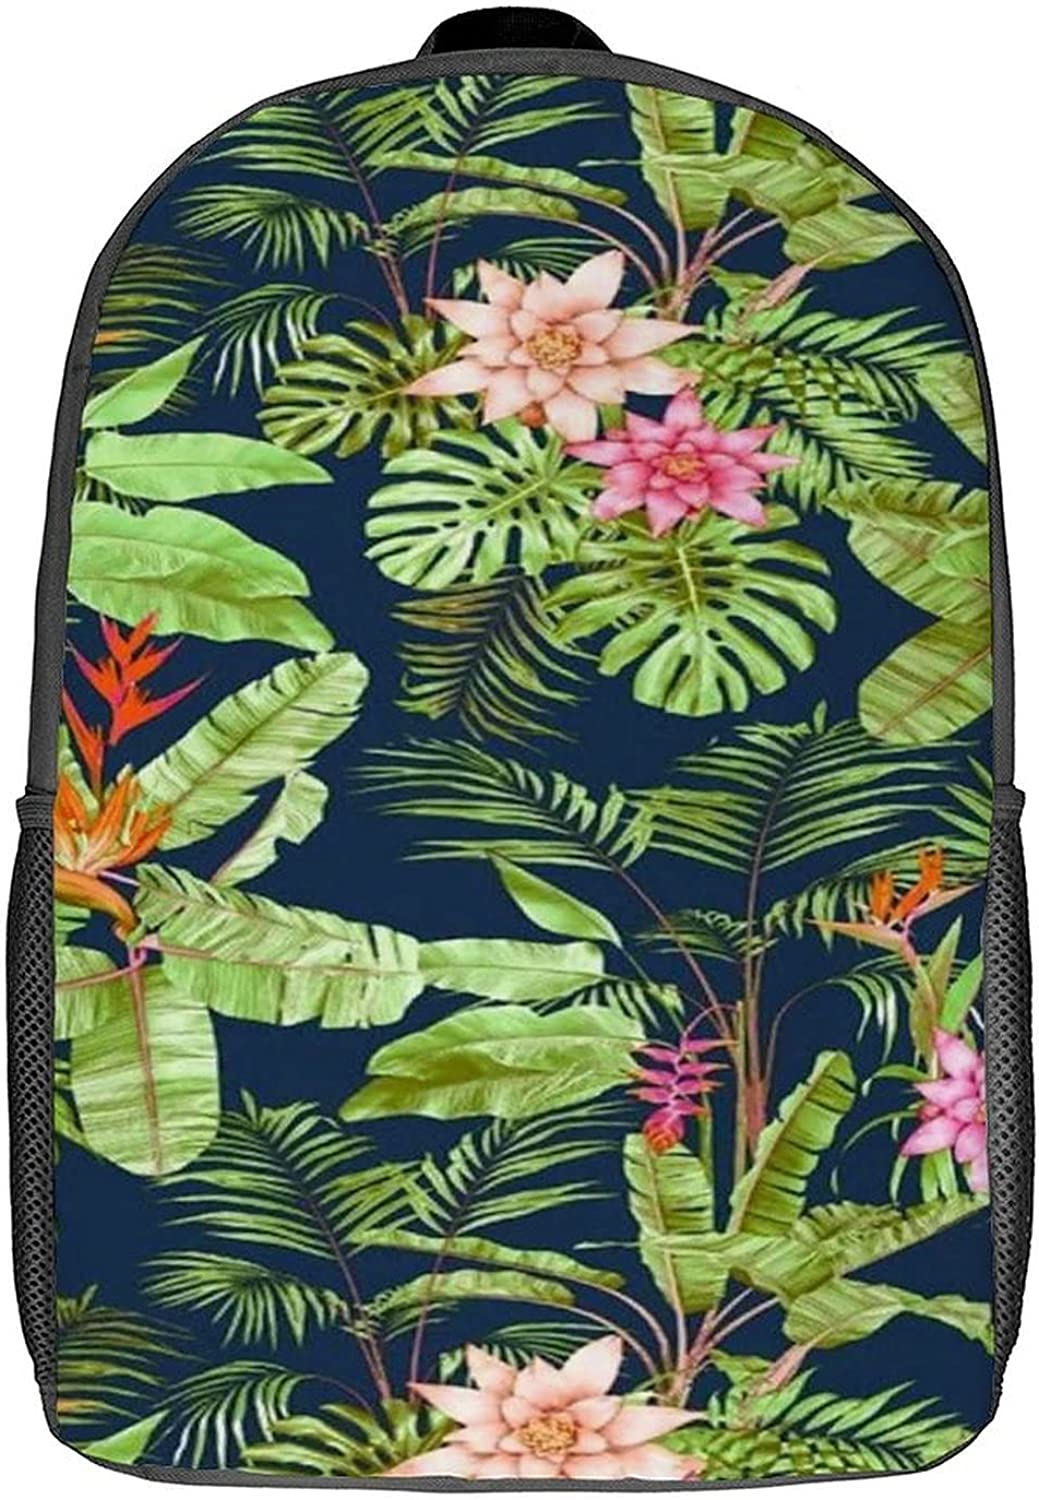 Backpack Jungle Print 1 Laptop Cheap discount mail order shopping 17inch Customed Pattern